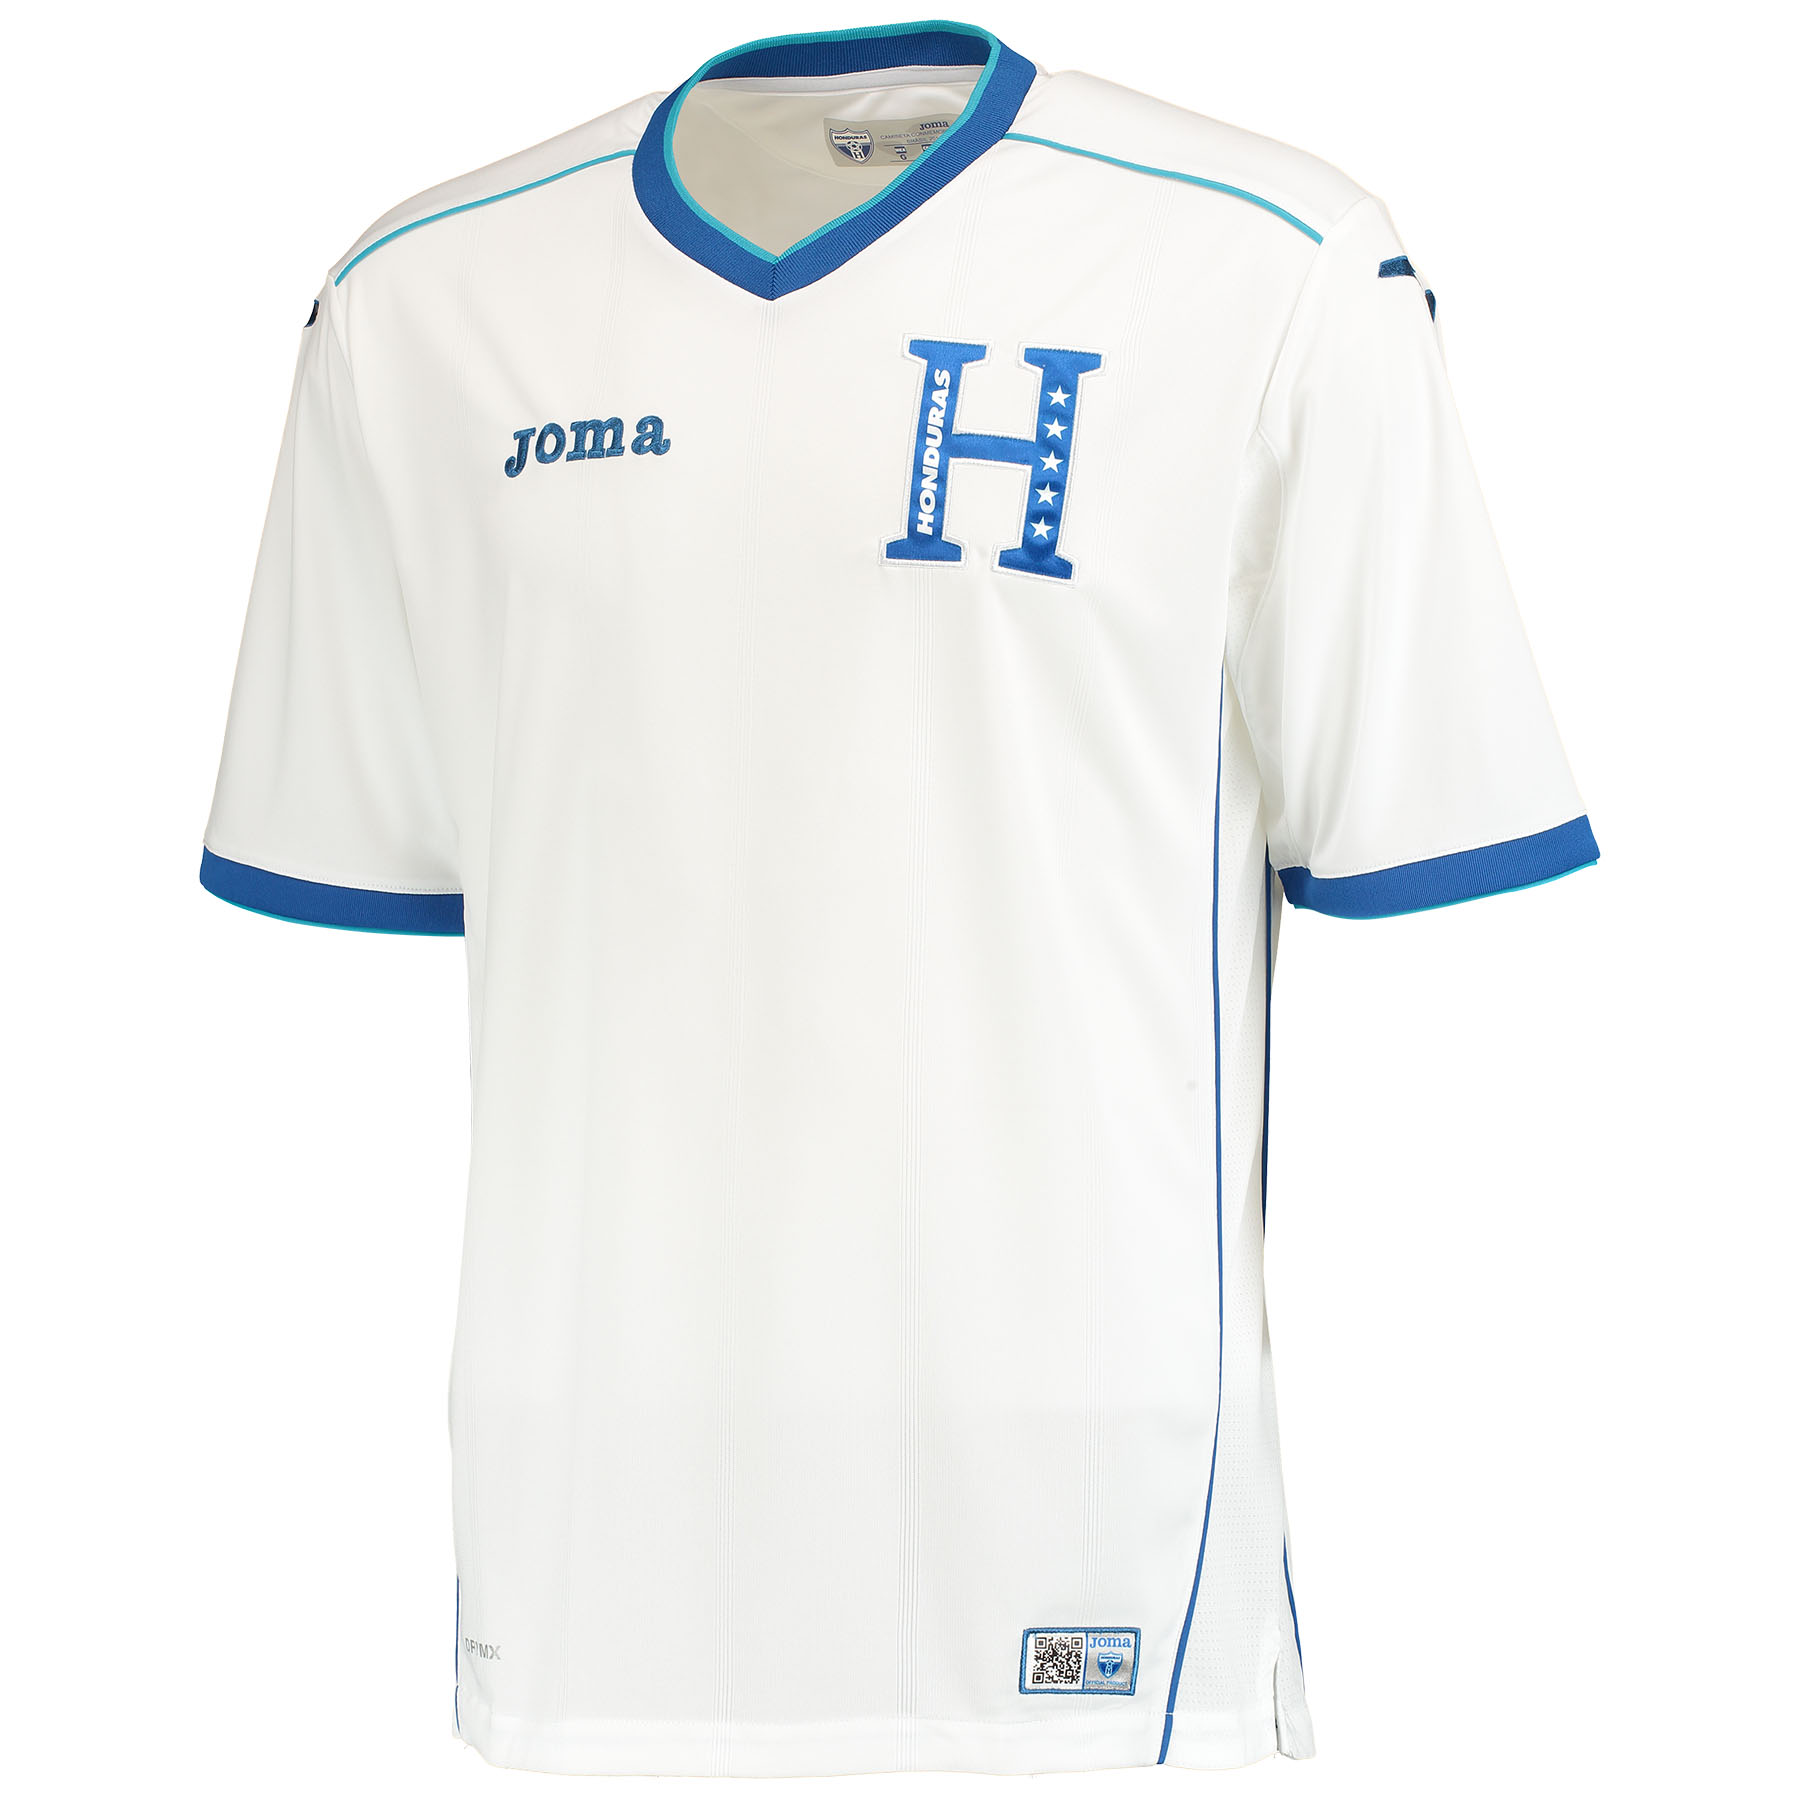 Honduras Home Shirt 2014 White White